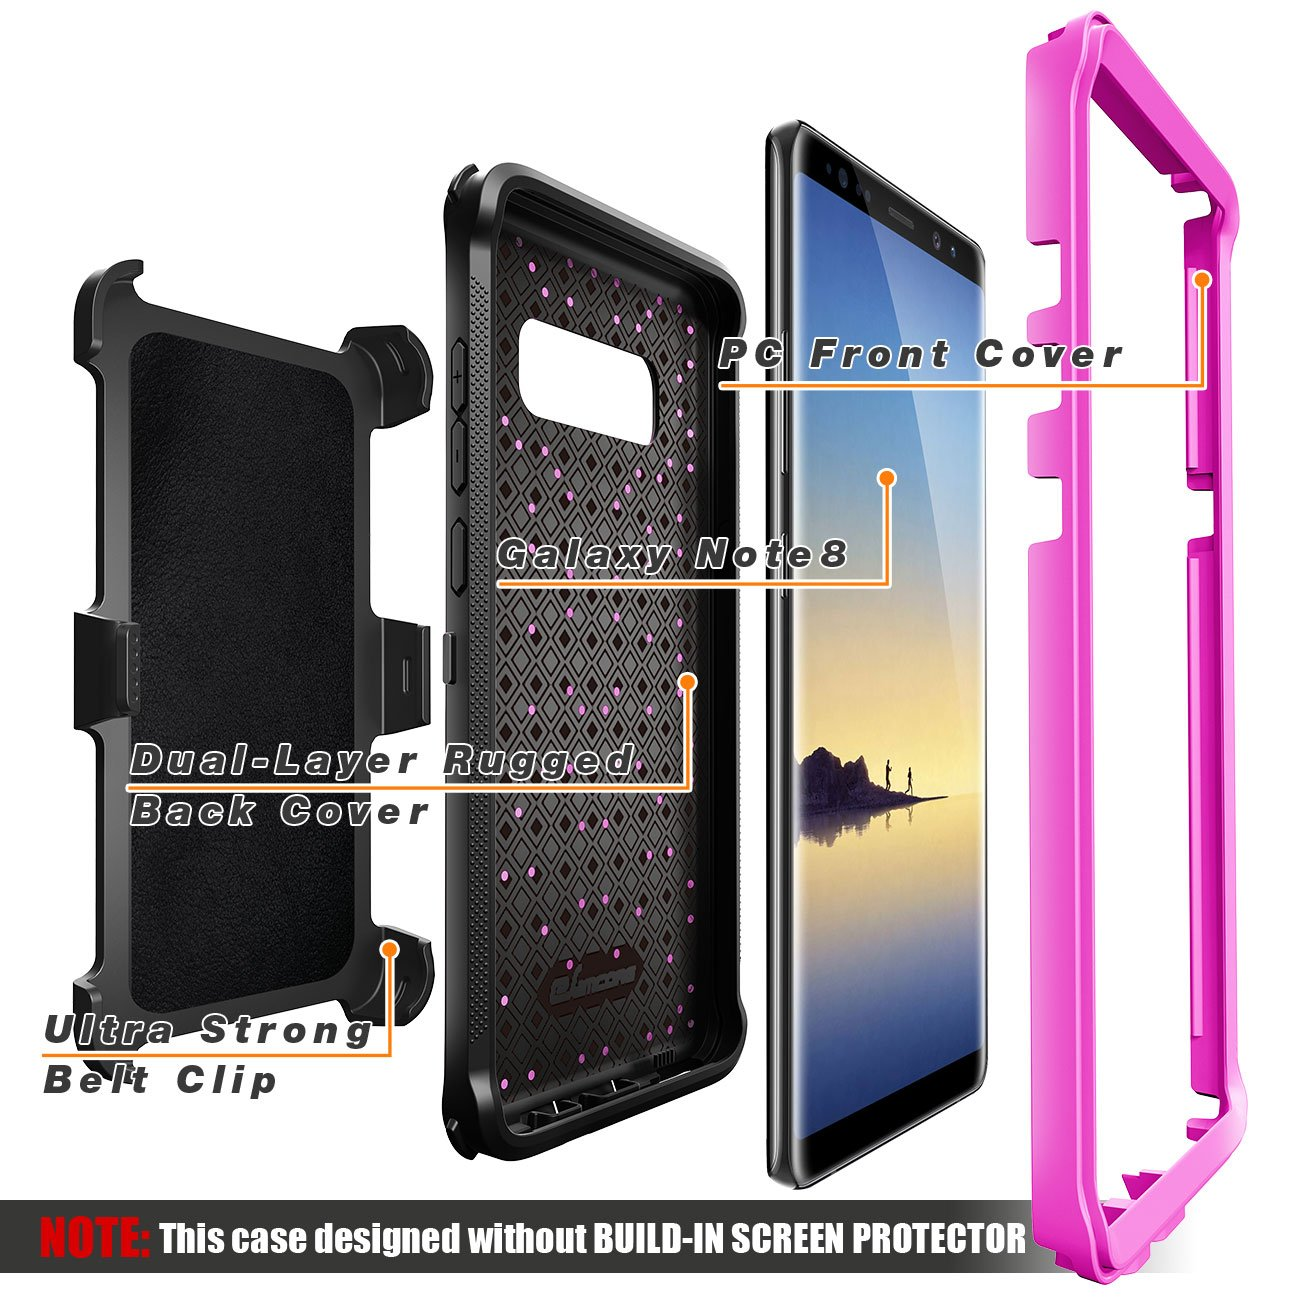 Galaxy Note 8 case, eSamcore Full Body Protection Shockproof Case Cover with Rugged Heavy Duty Holster Clip Kickstand [WITHOUT Built-in Screen Protector] for Samsung Note 8 2017 [Purple]